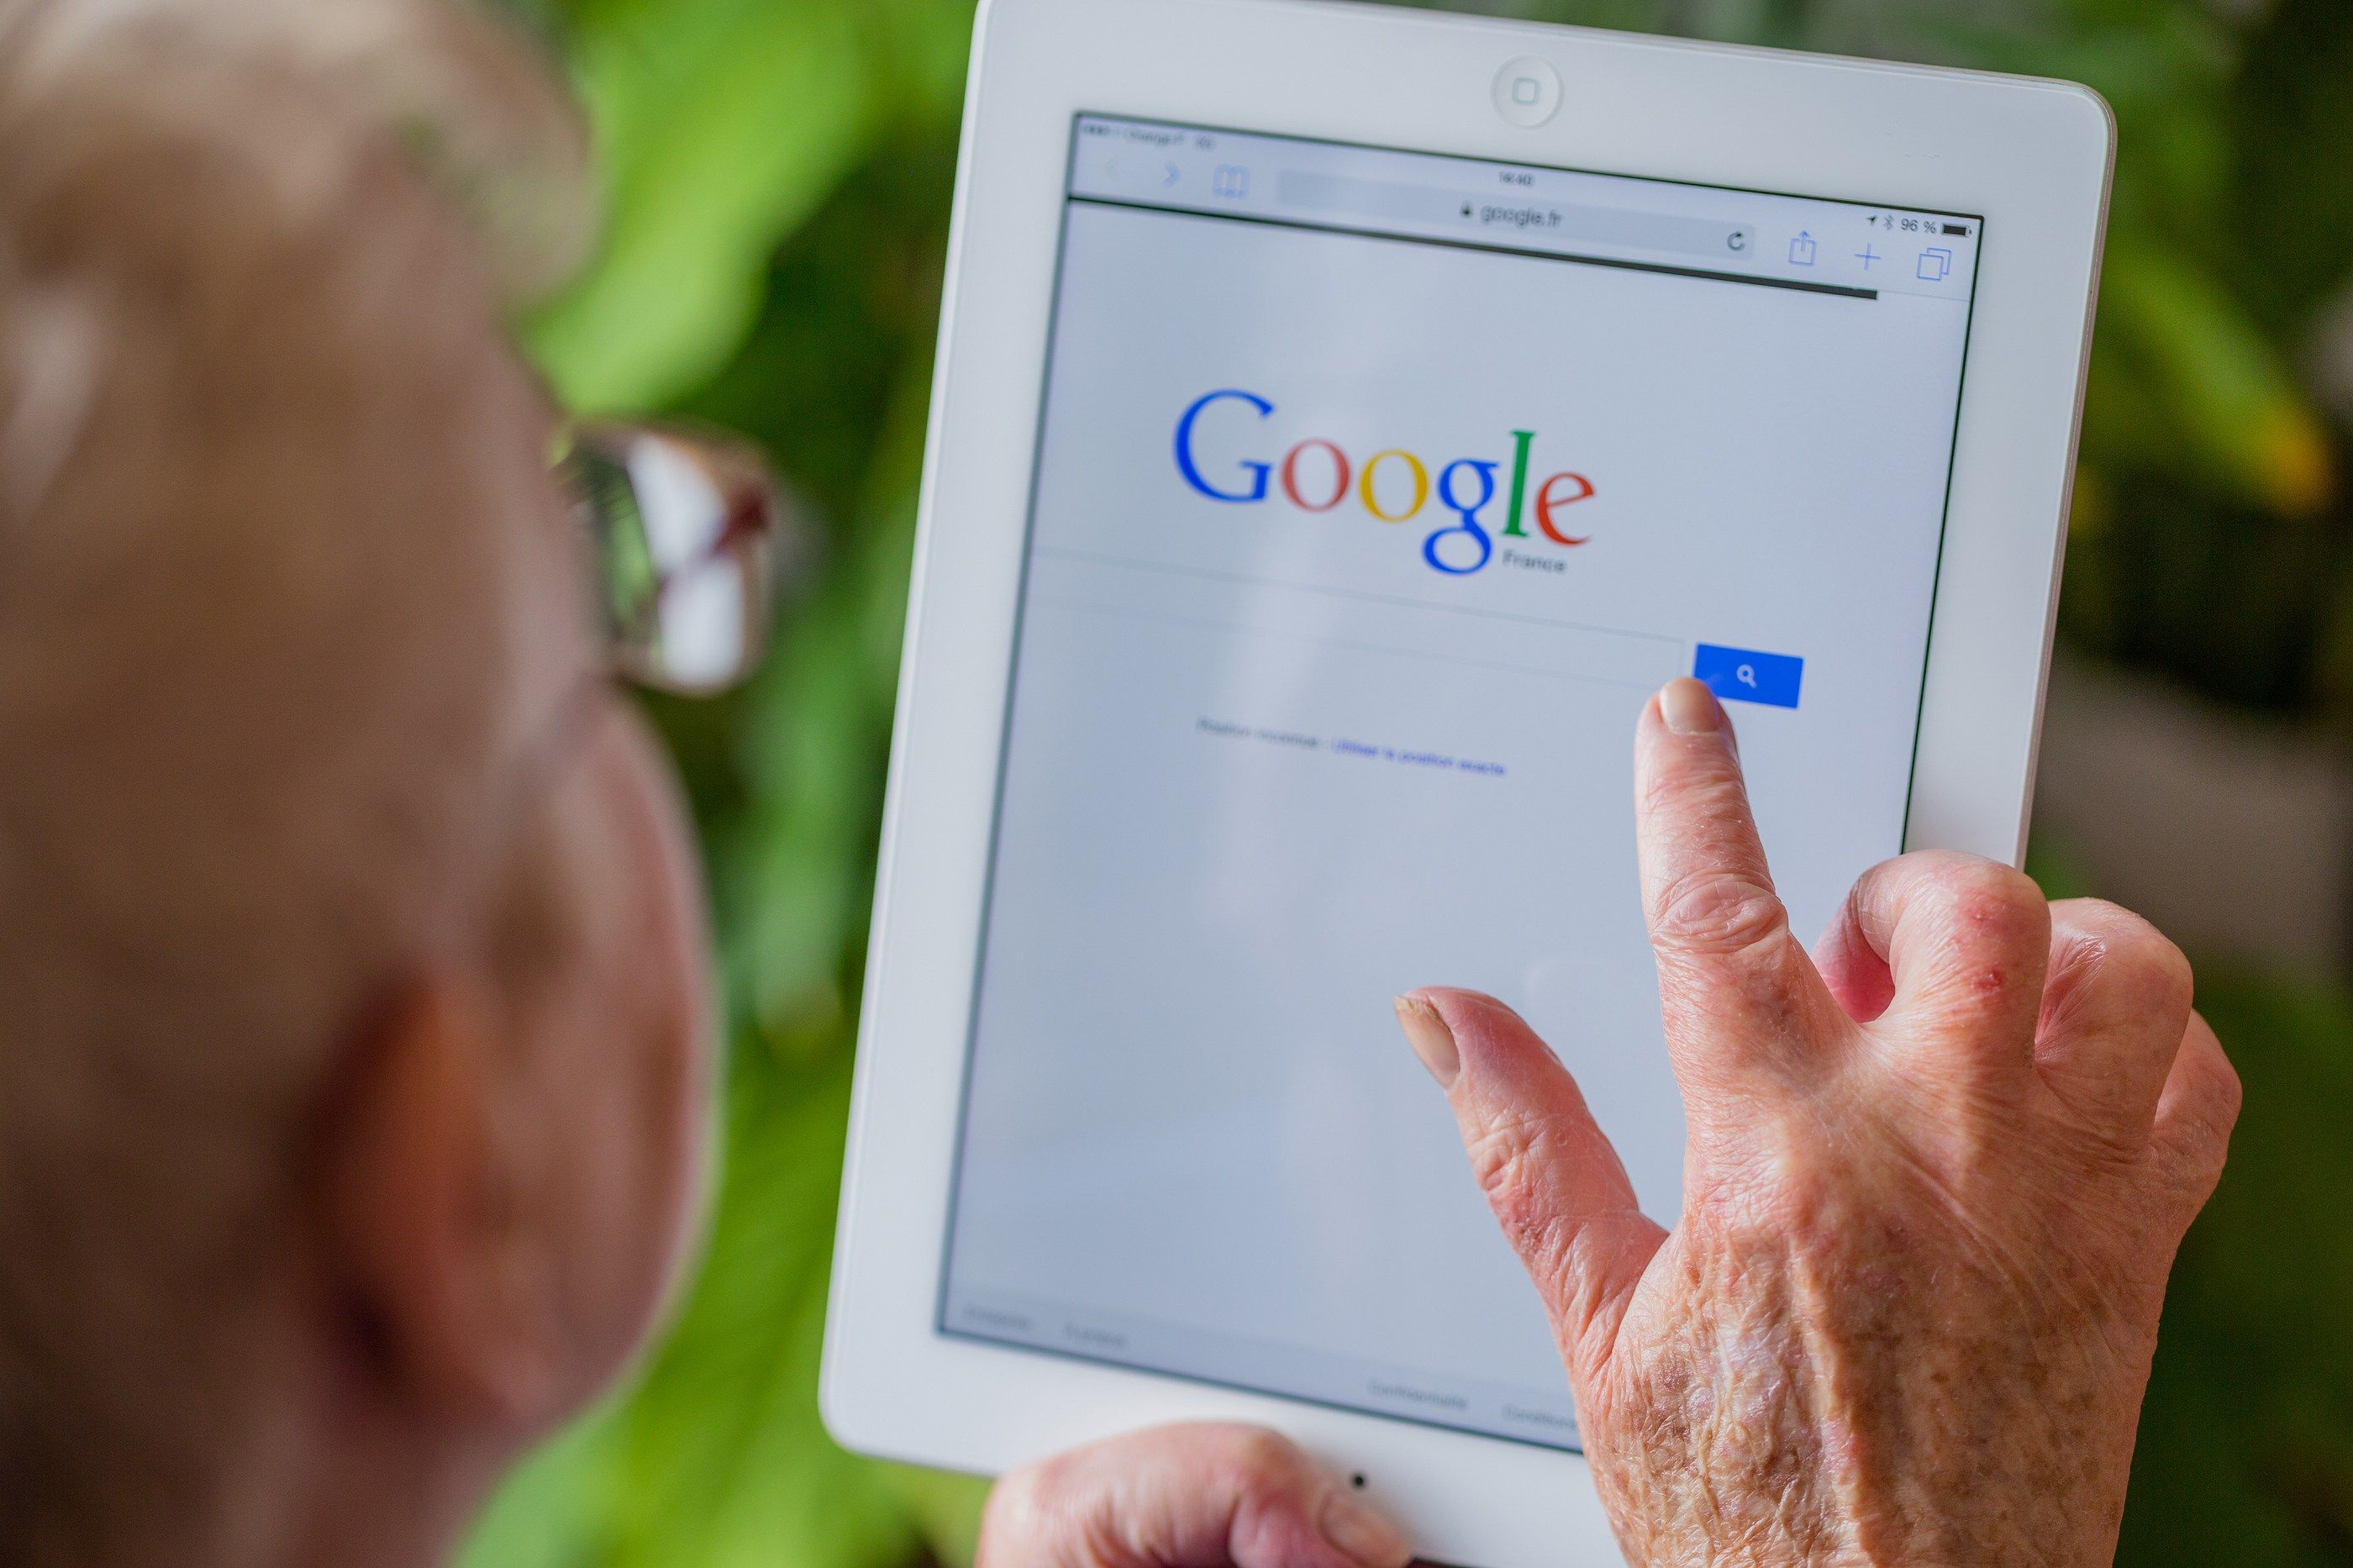 5 iPad Apps to Help With Dementia in 2020 Google